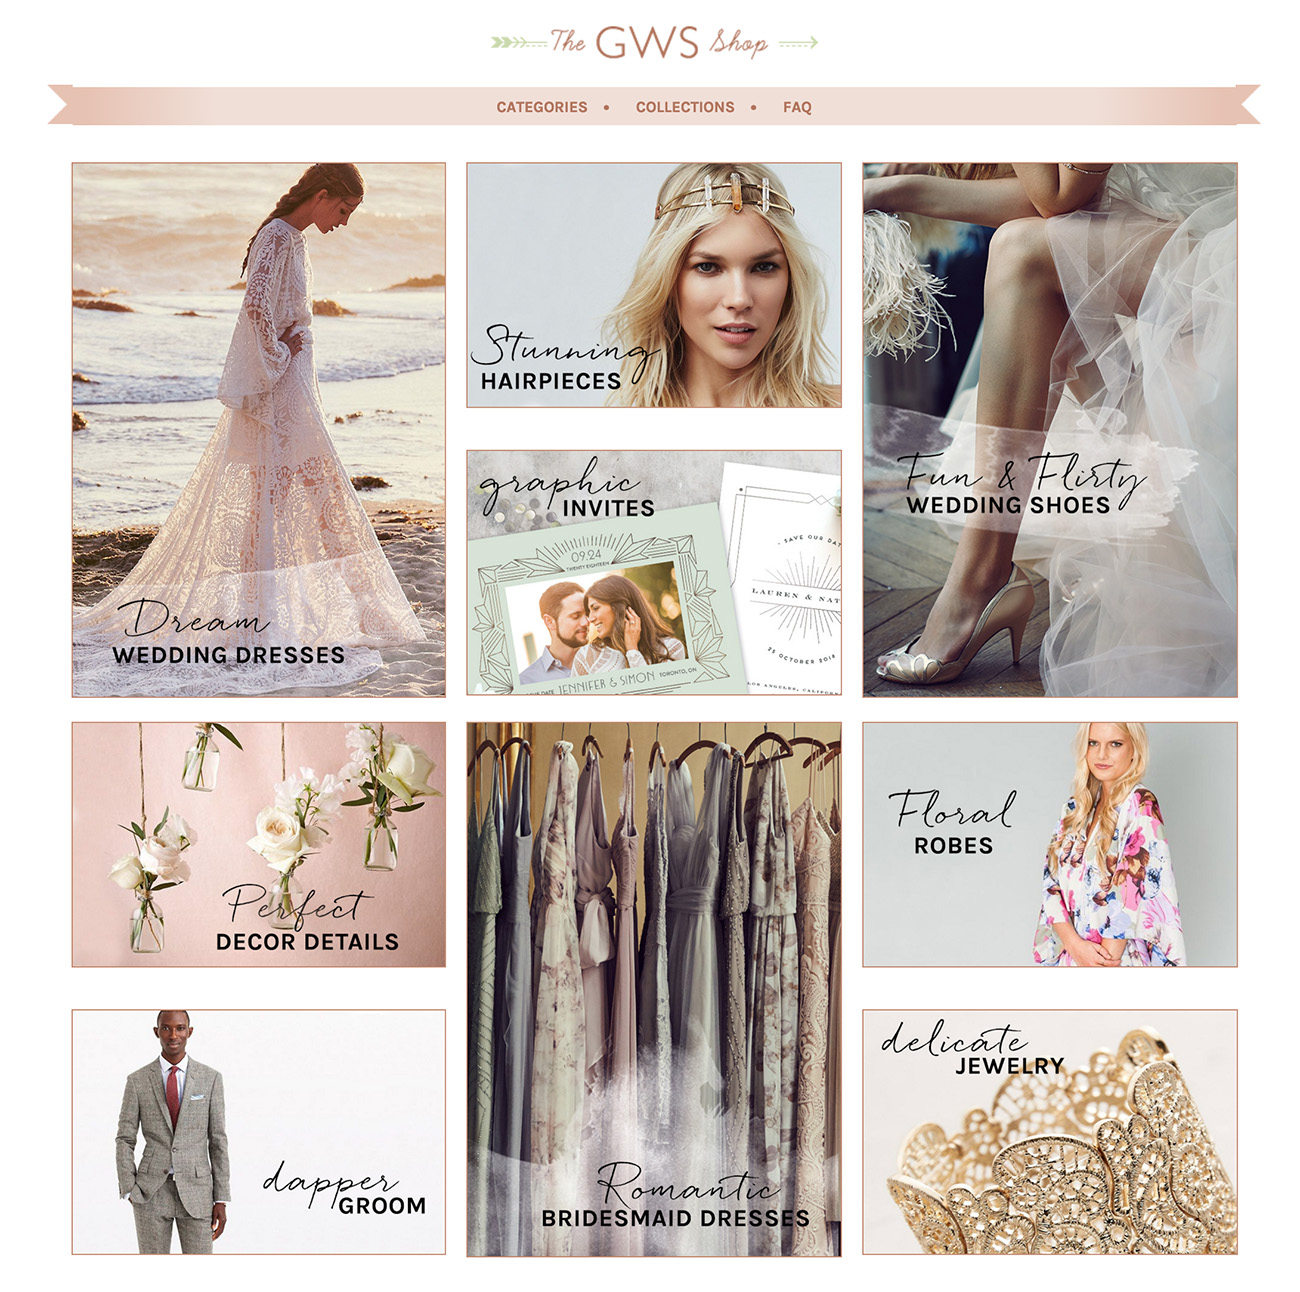 The GWS Shop